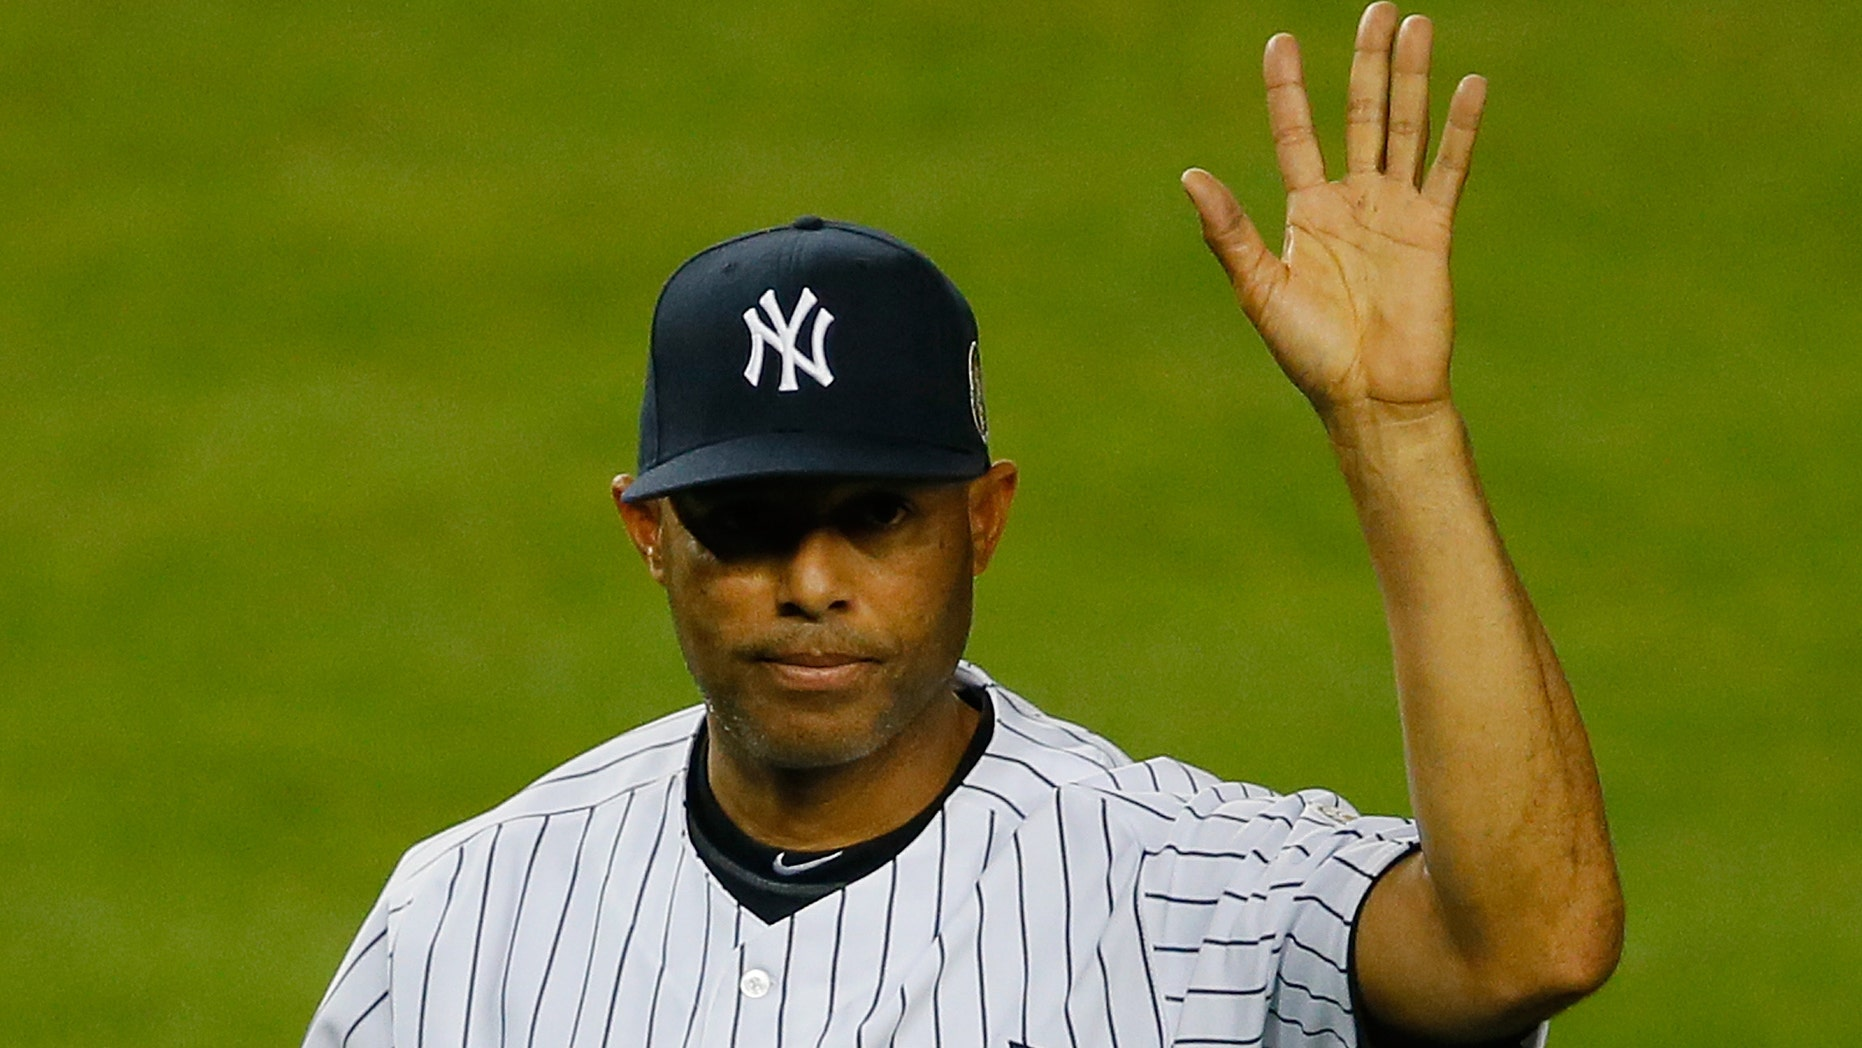 NEW YORK, NY - SEPTEMBER 26:  Mariano Rivera #42 of the New York Yankees walks back to the dugout after collecting some dirt from the pitcher's mound after the game against the Tampa Bay Rays at Yankee Stadium on September 26, 2013 in the Bronx borough of New York City.  (Photo by Mike Stobe/Getty Images)